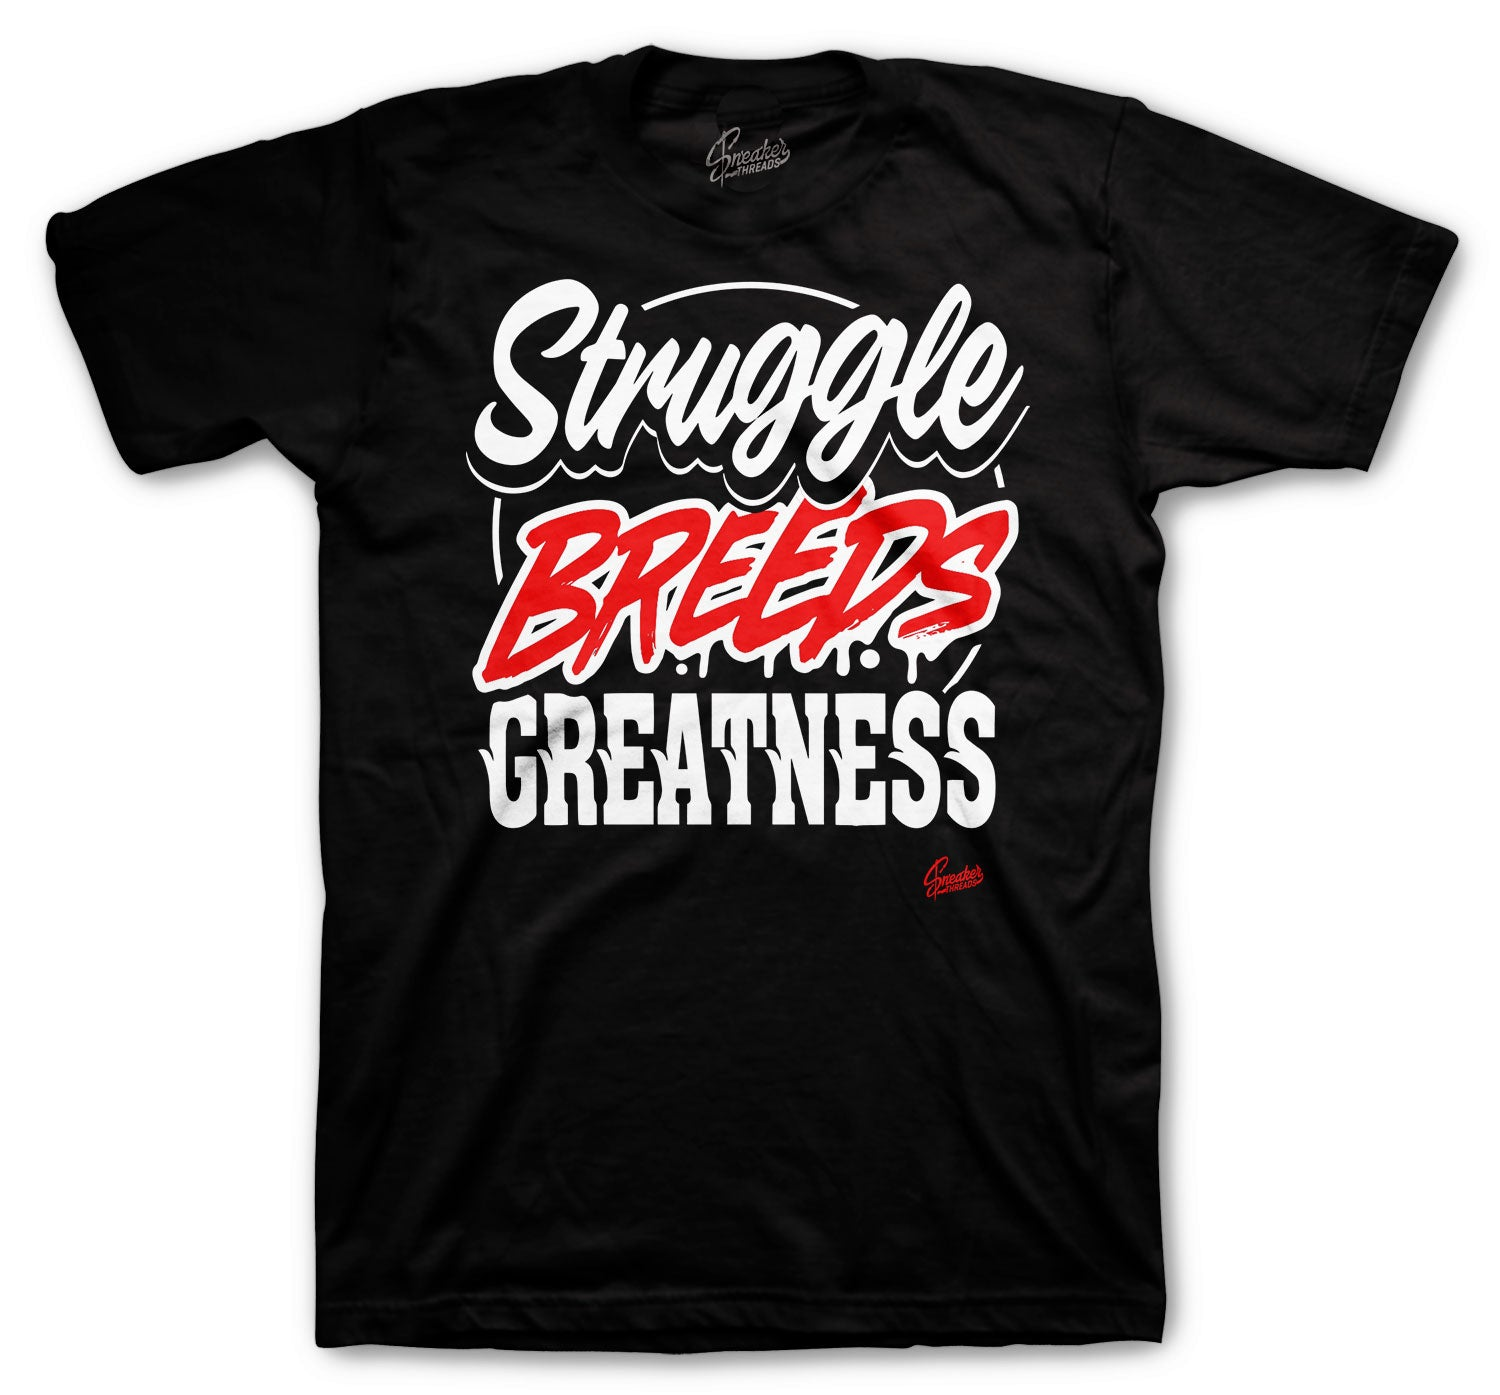 Jordan 13 Reverse Got Game Struggle Breeds Shirt